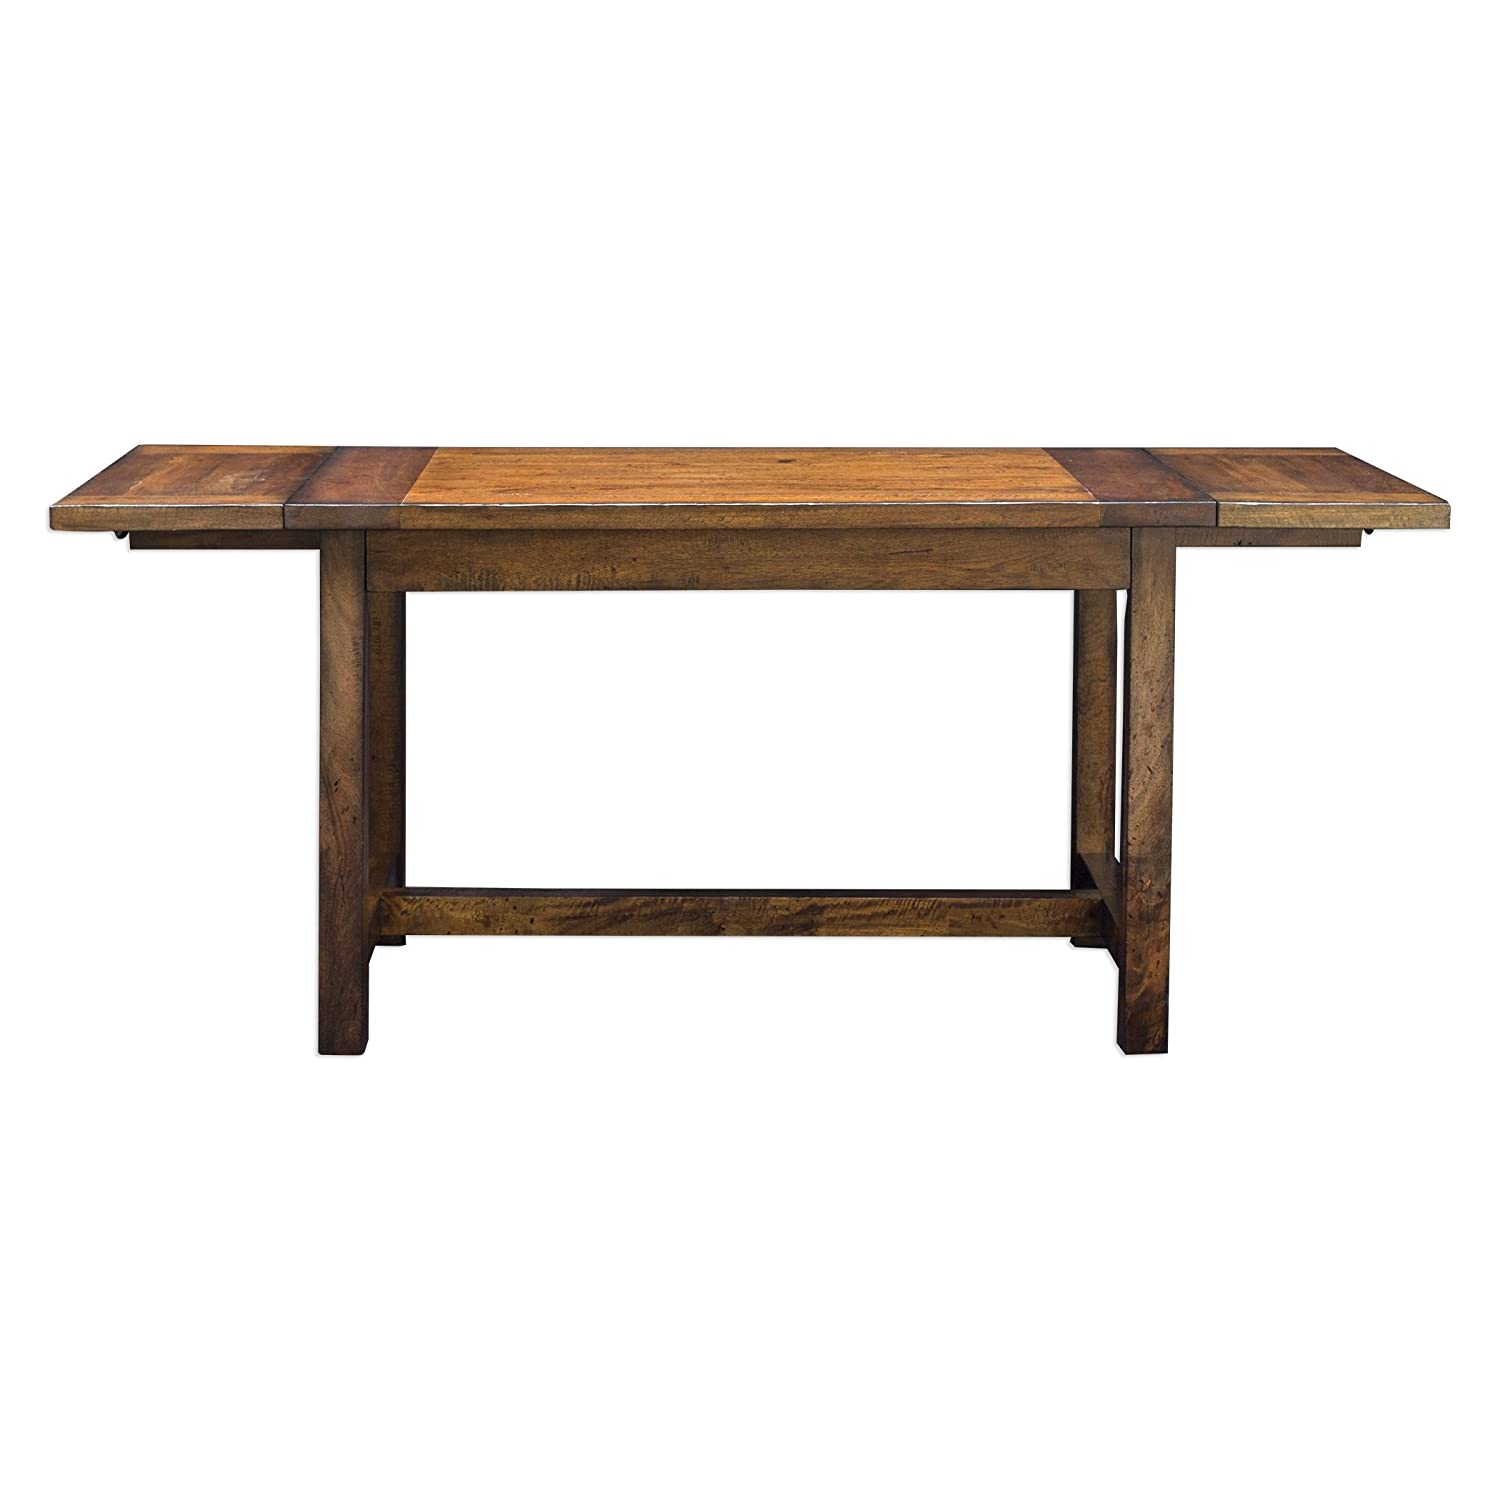 Amazon com my swanky home rustic antique style oak wood dining table drop leaf 6 seat adjustable kitchen tables